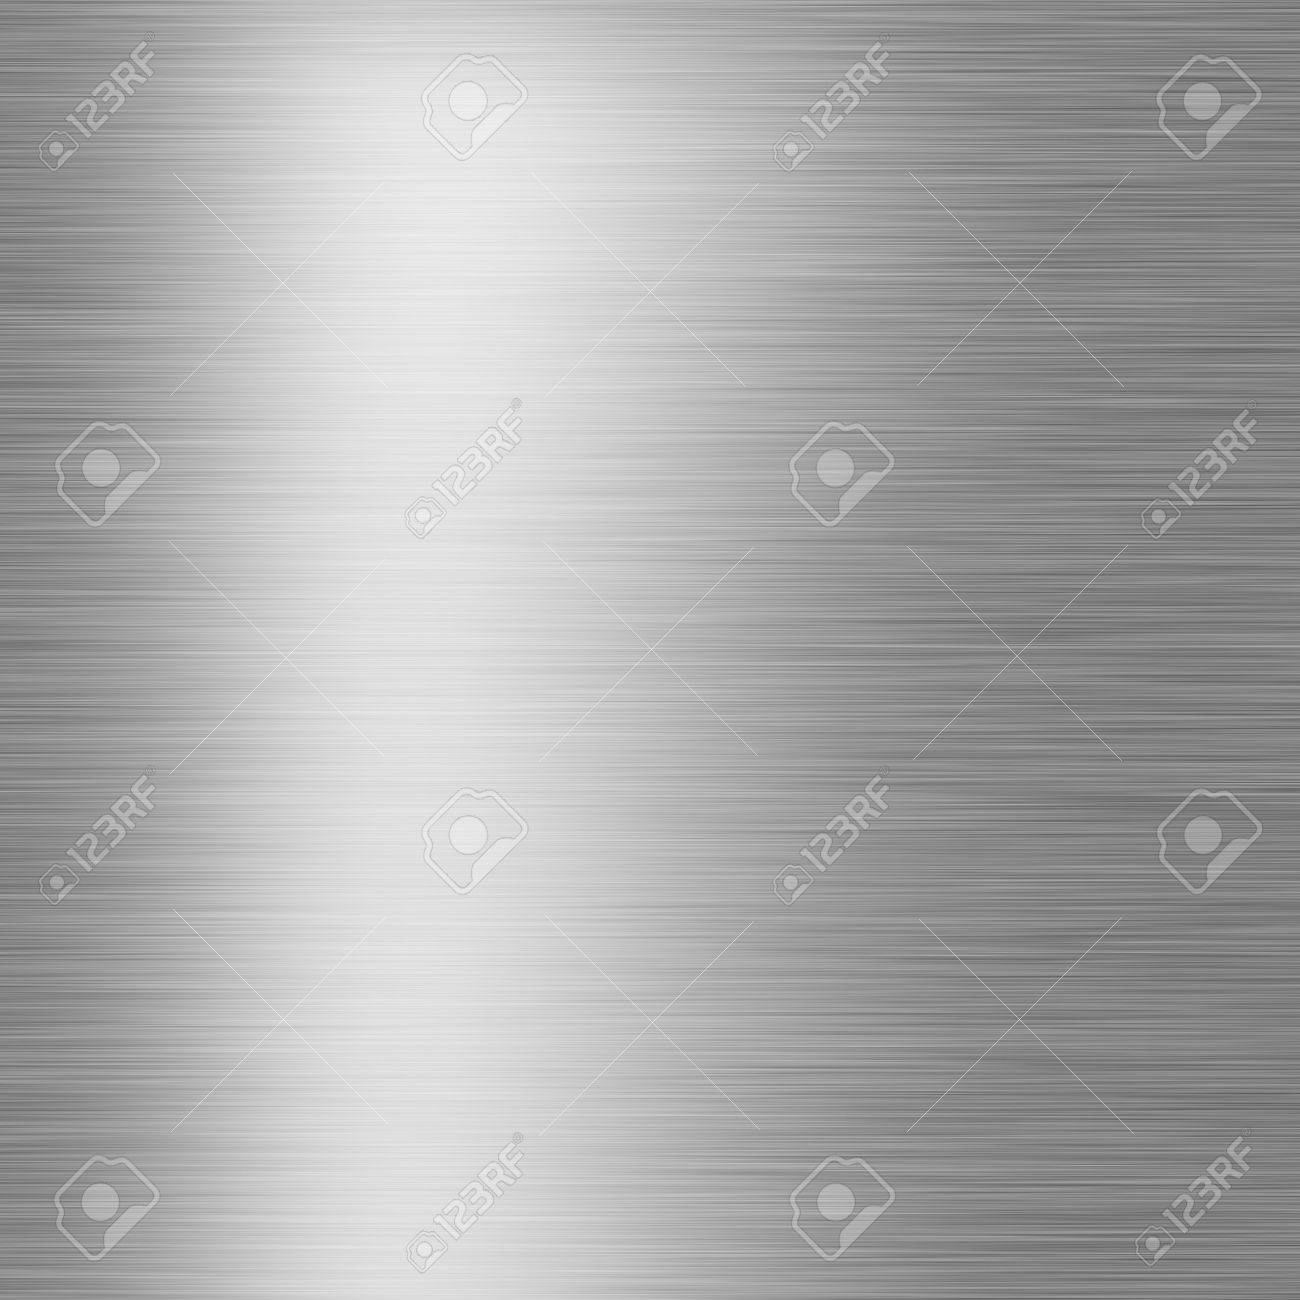 Stainless steel texture - 42530296